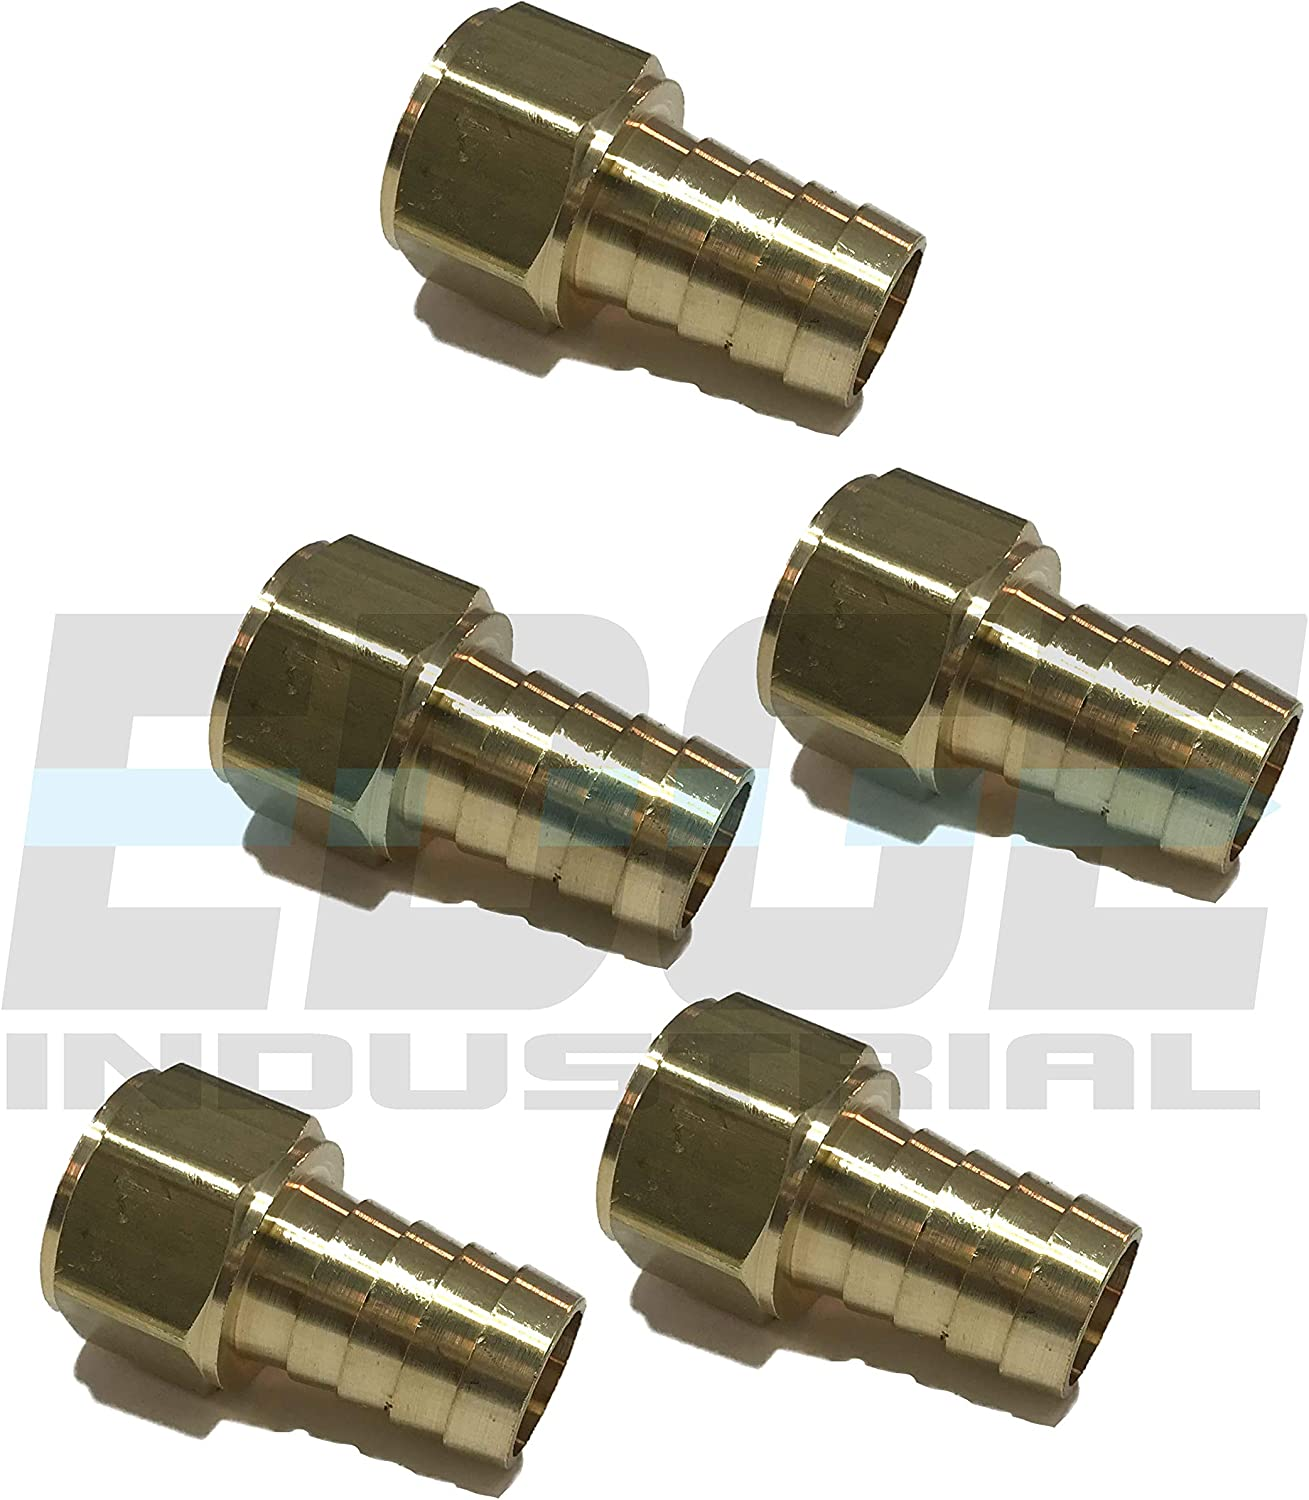 Water AIR Gas EDGE INDUSTRIAL 5//8 Hose ID to 1//2 Female NPT FNPT Straight Brass Fitting Fuel Oil WOG Qty 01